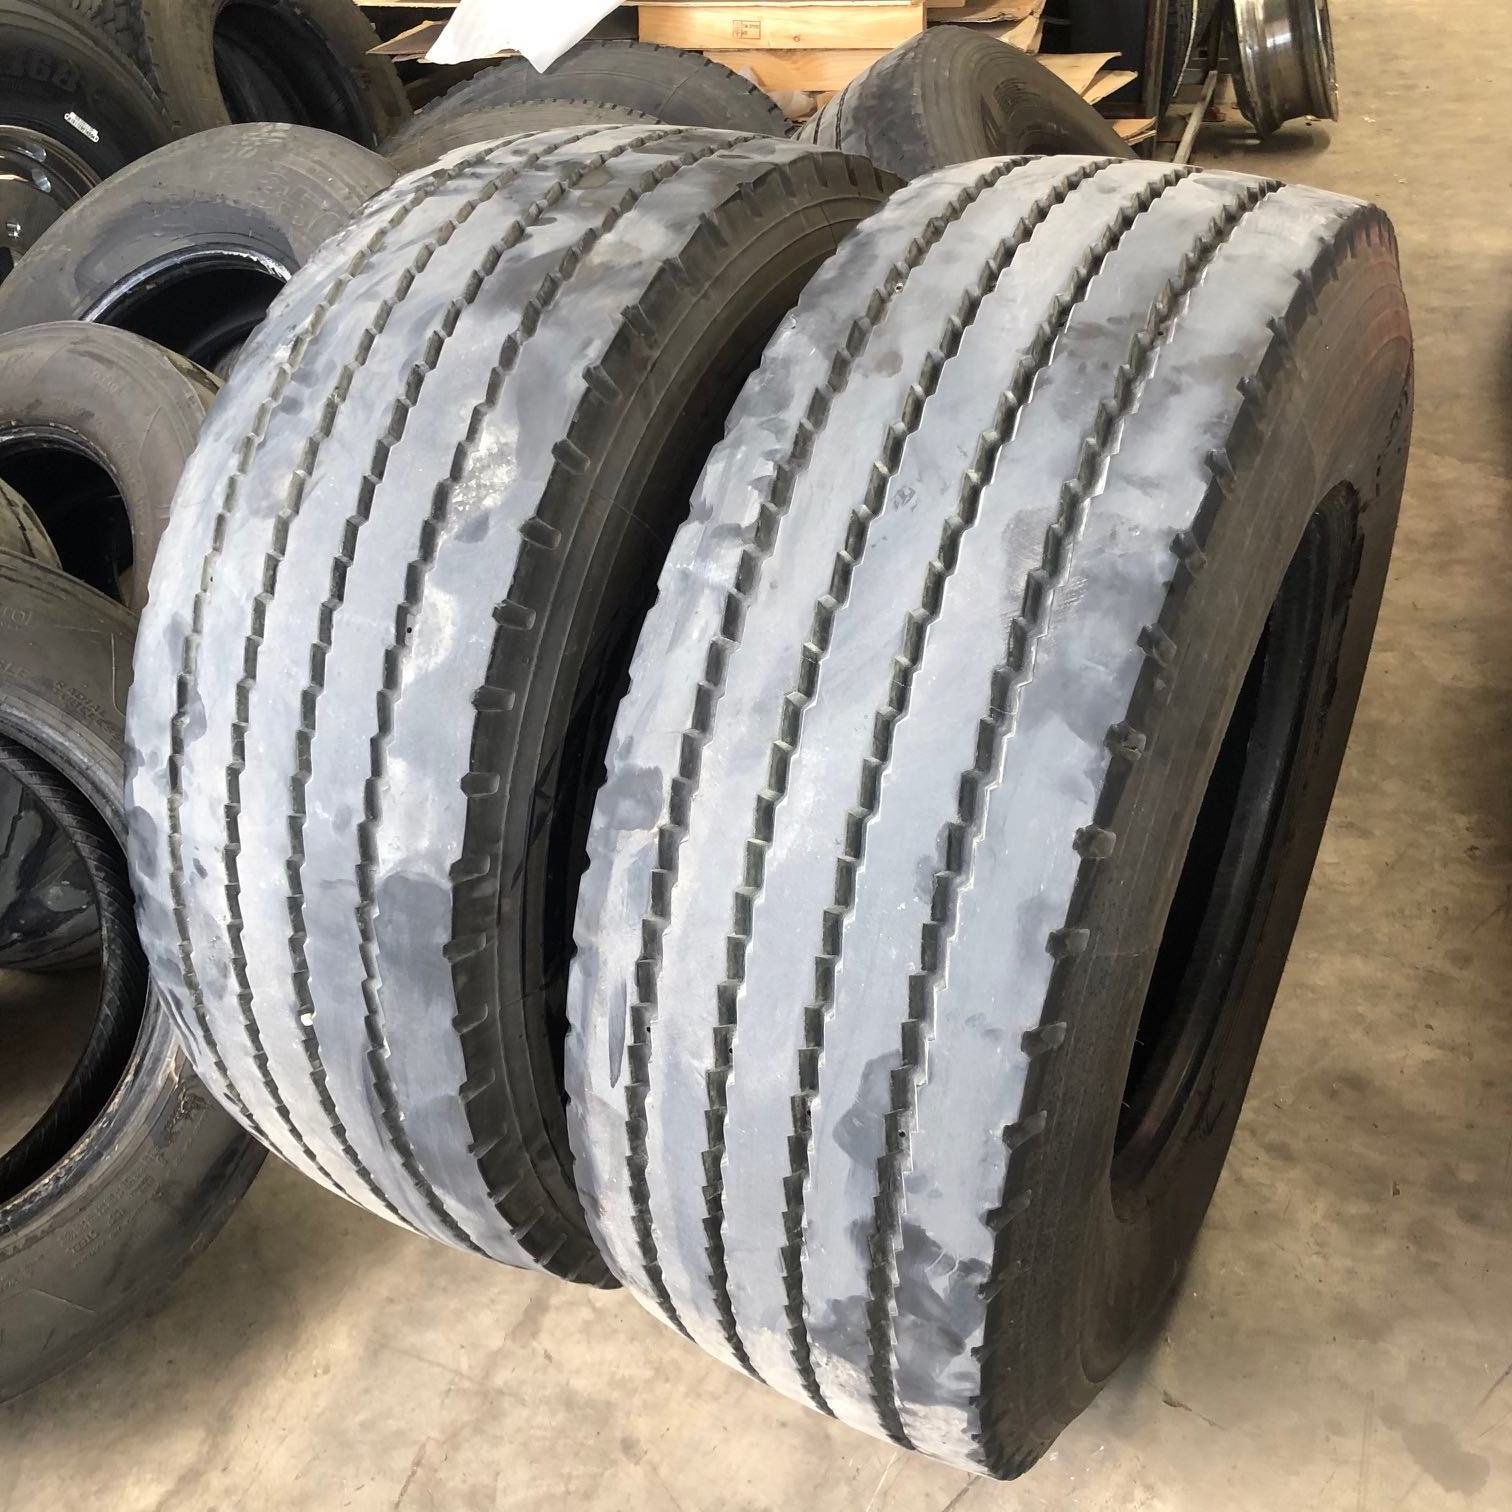 Used Hankook AH15 385/65R22.5 Steer Tyre